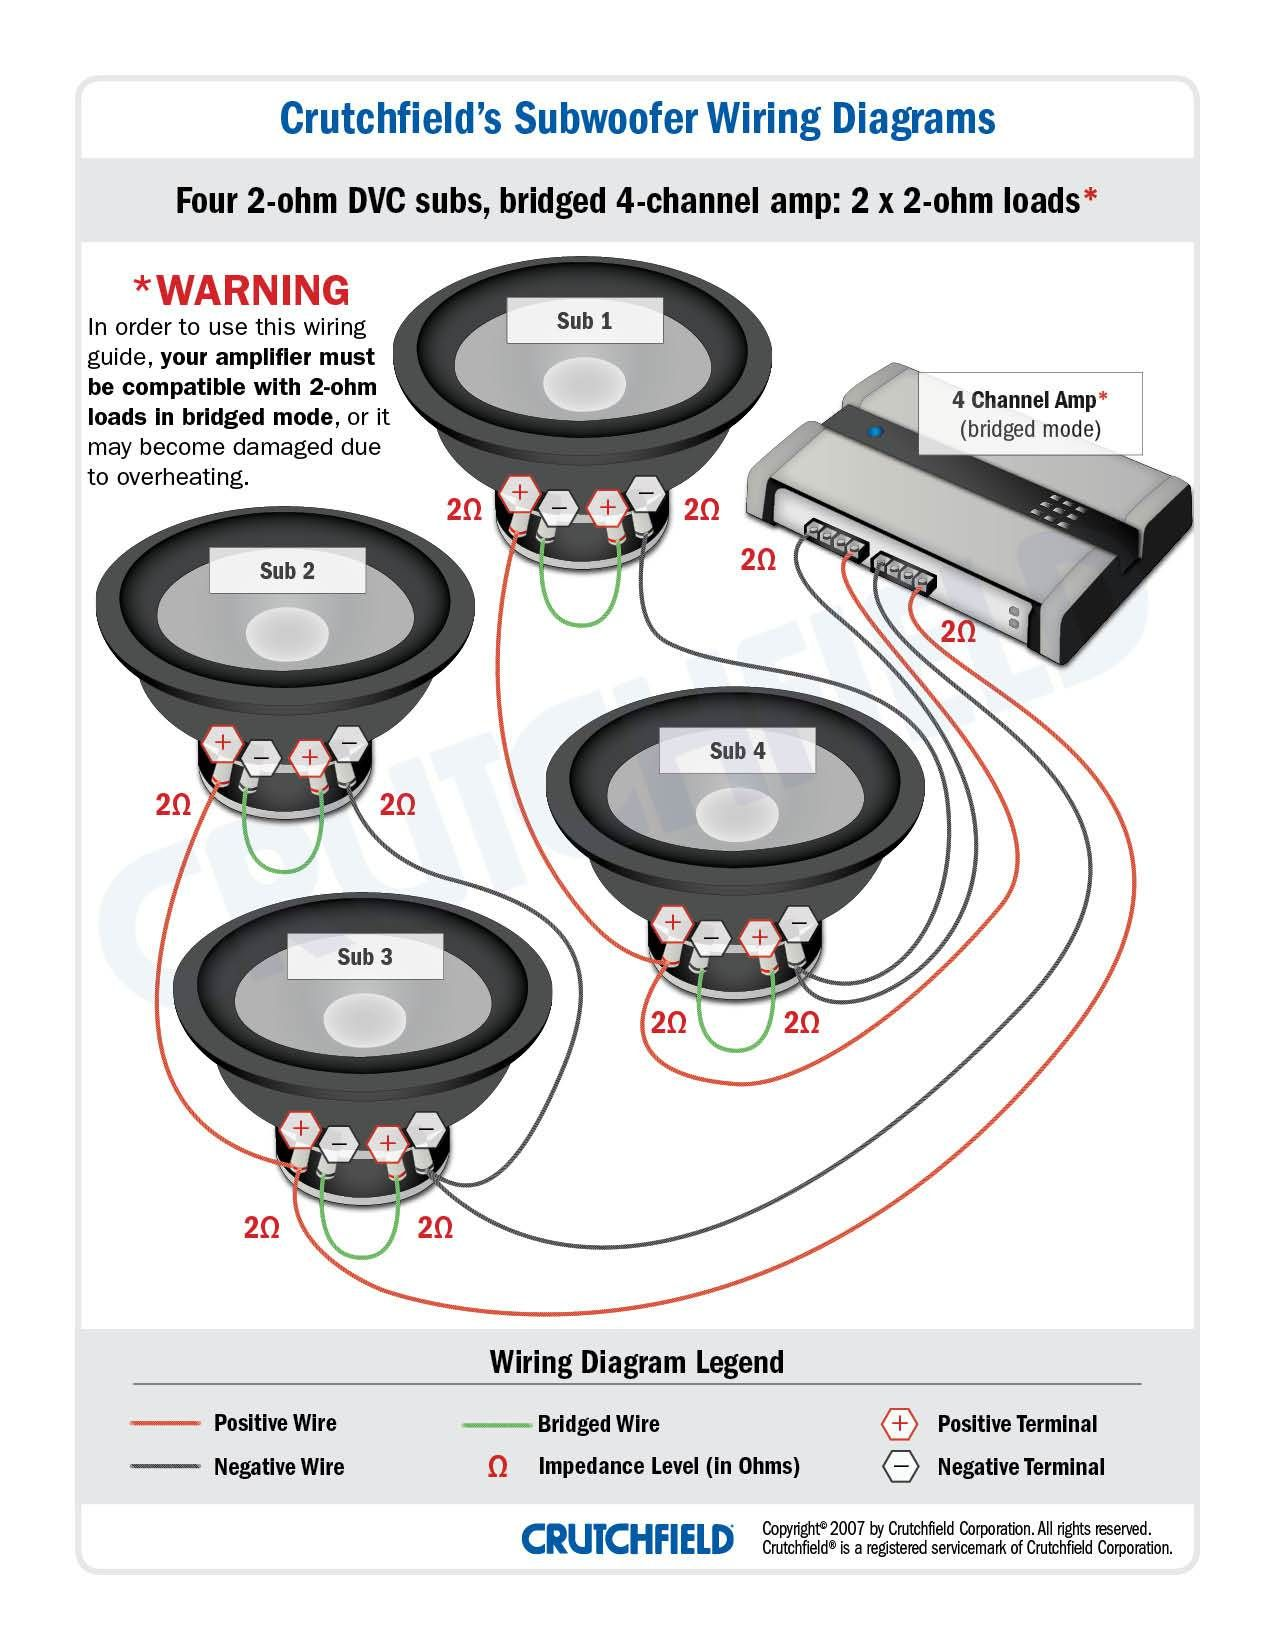 subwoofer wiring diagrams throughout 4 ohm dual voice coil diagram rh  pinterest com Subwoofer Wiring Diagrams